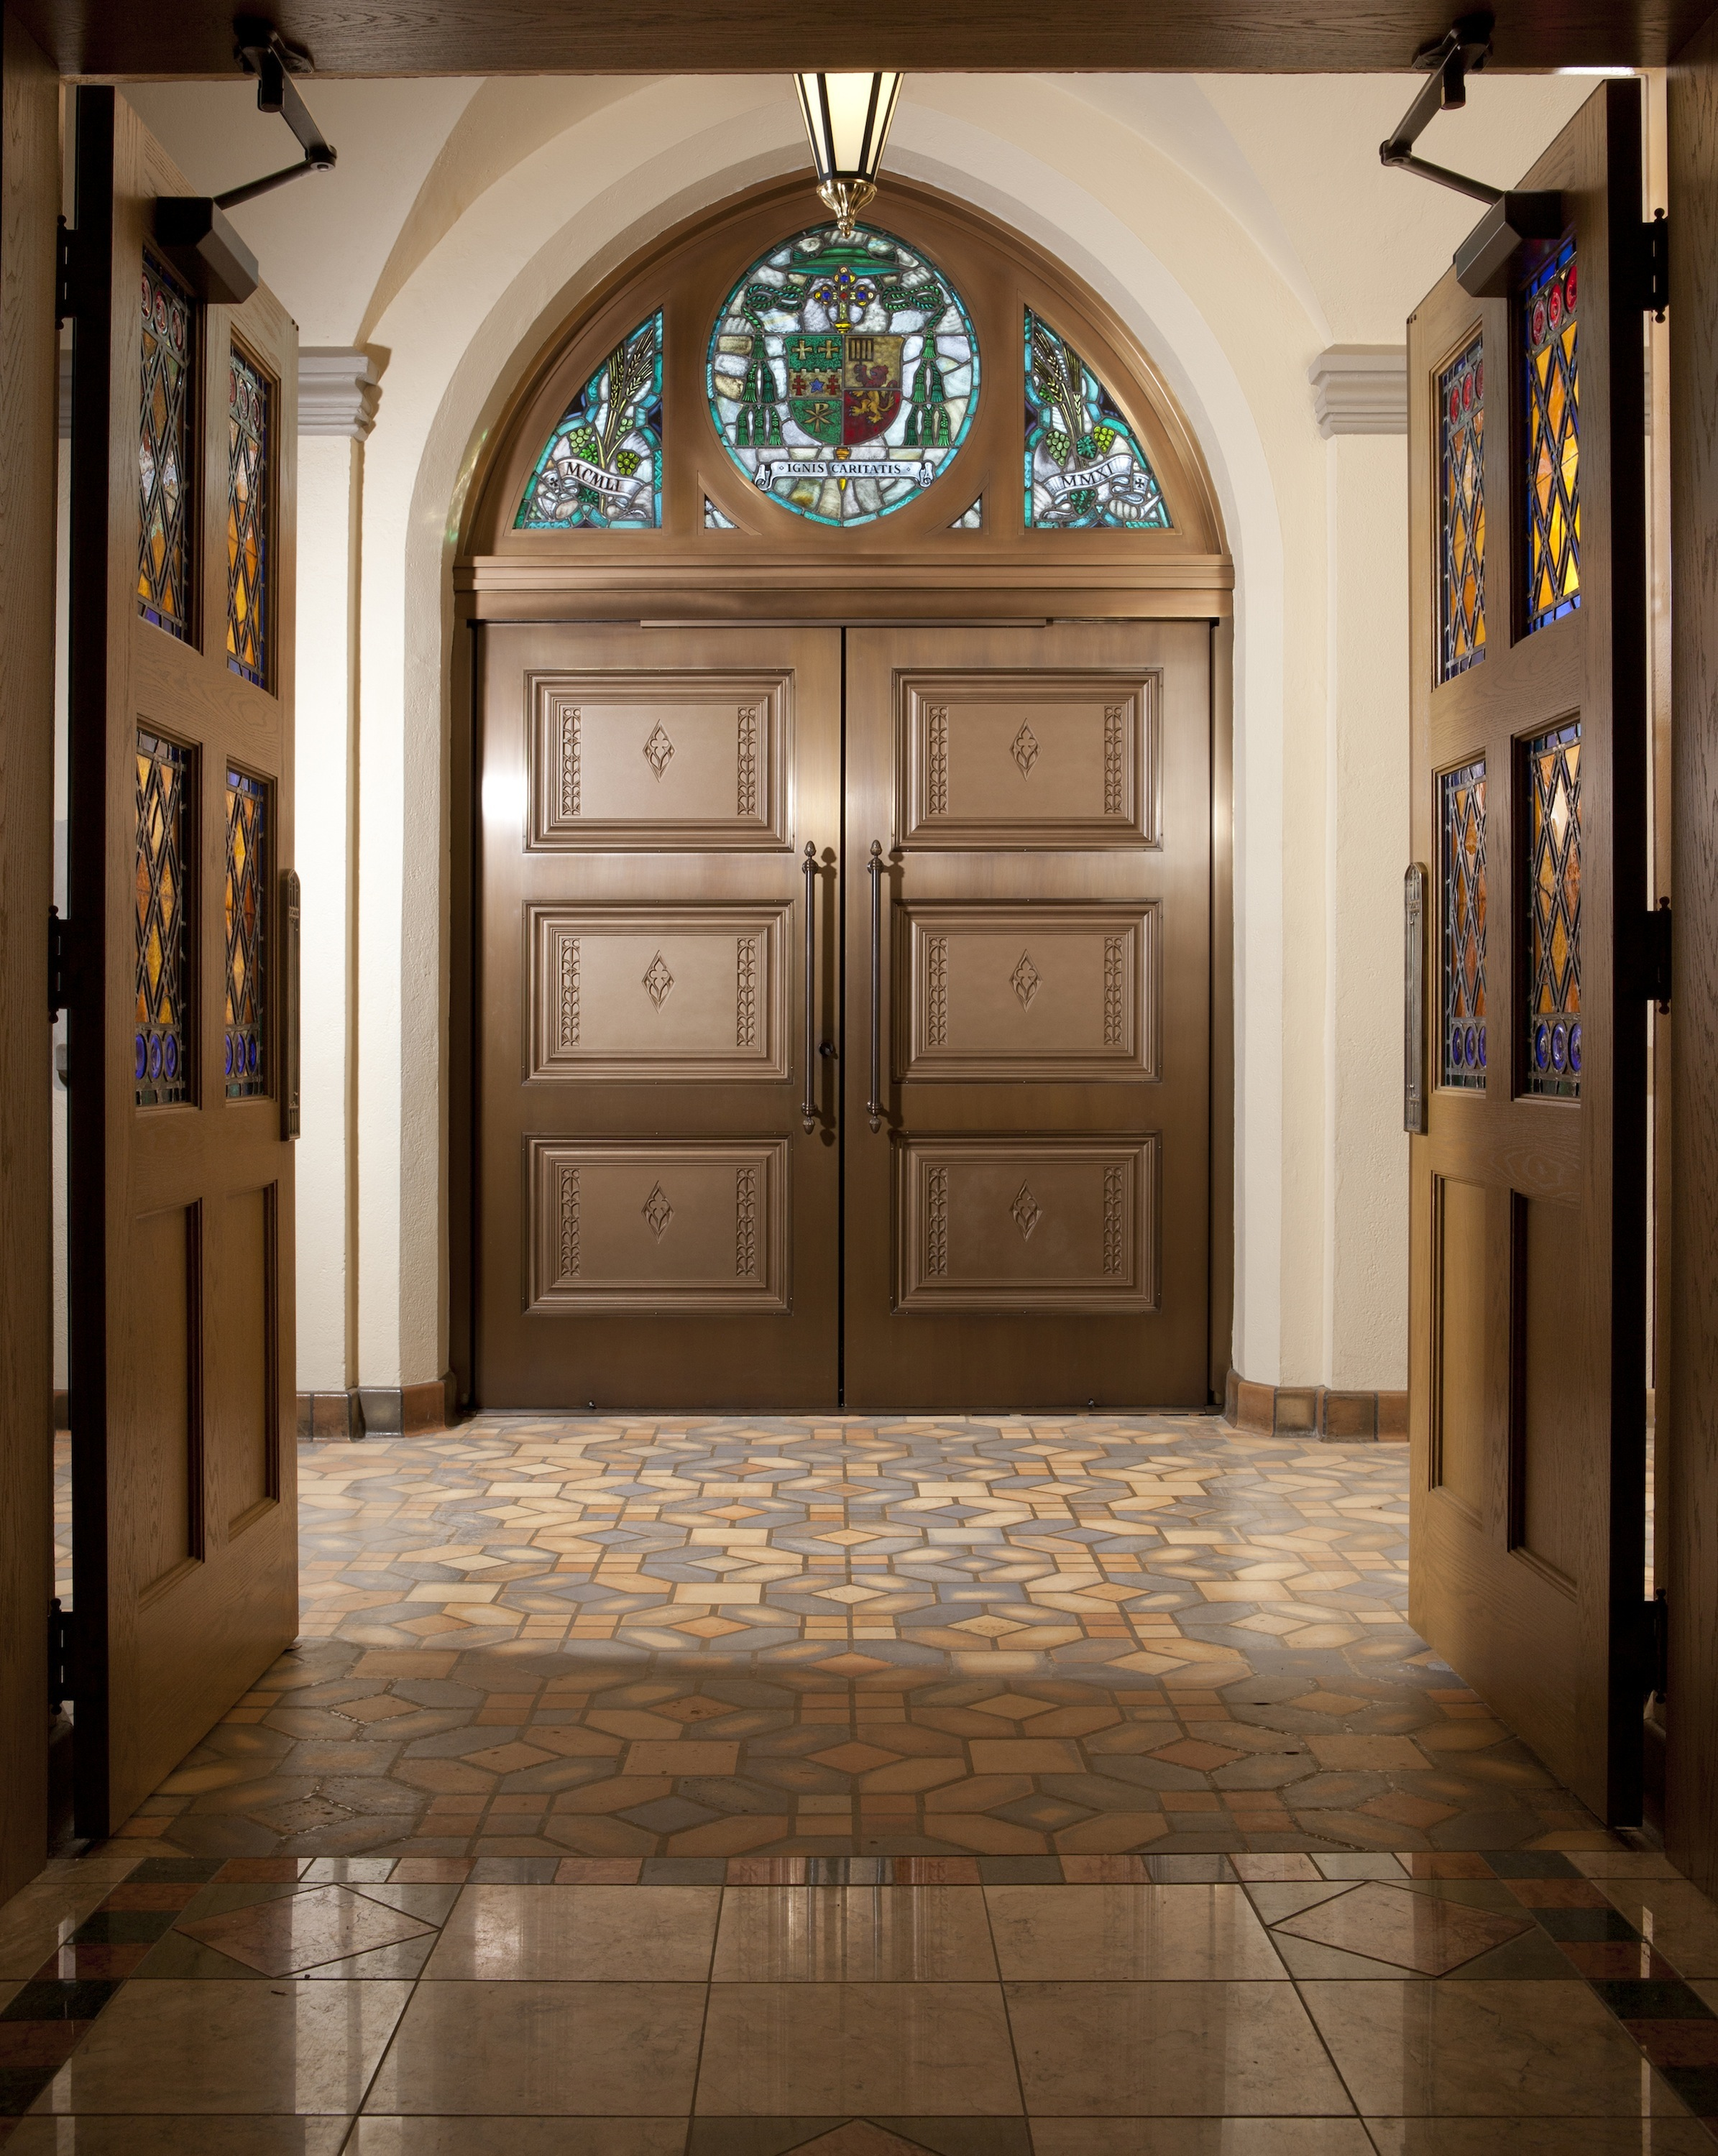 Ellison Provides Custom Balanced Doors for Cathedral & Press - Ellison Provides Custom Balanced Doors for Cathedral ...